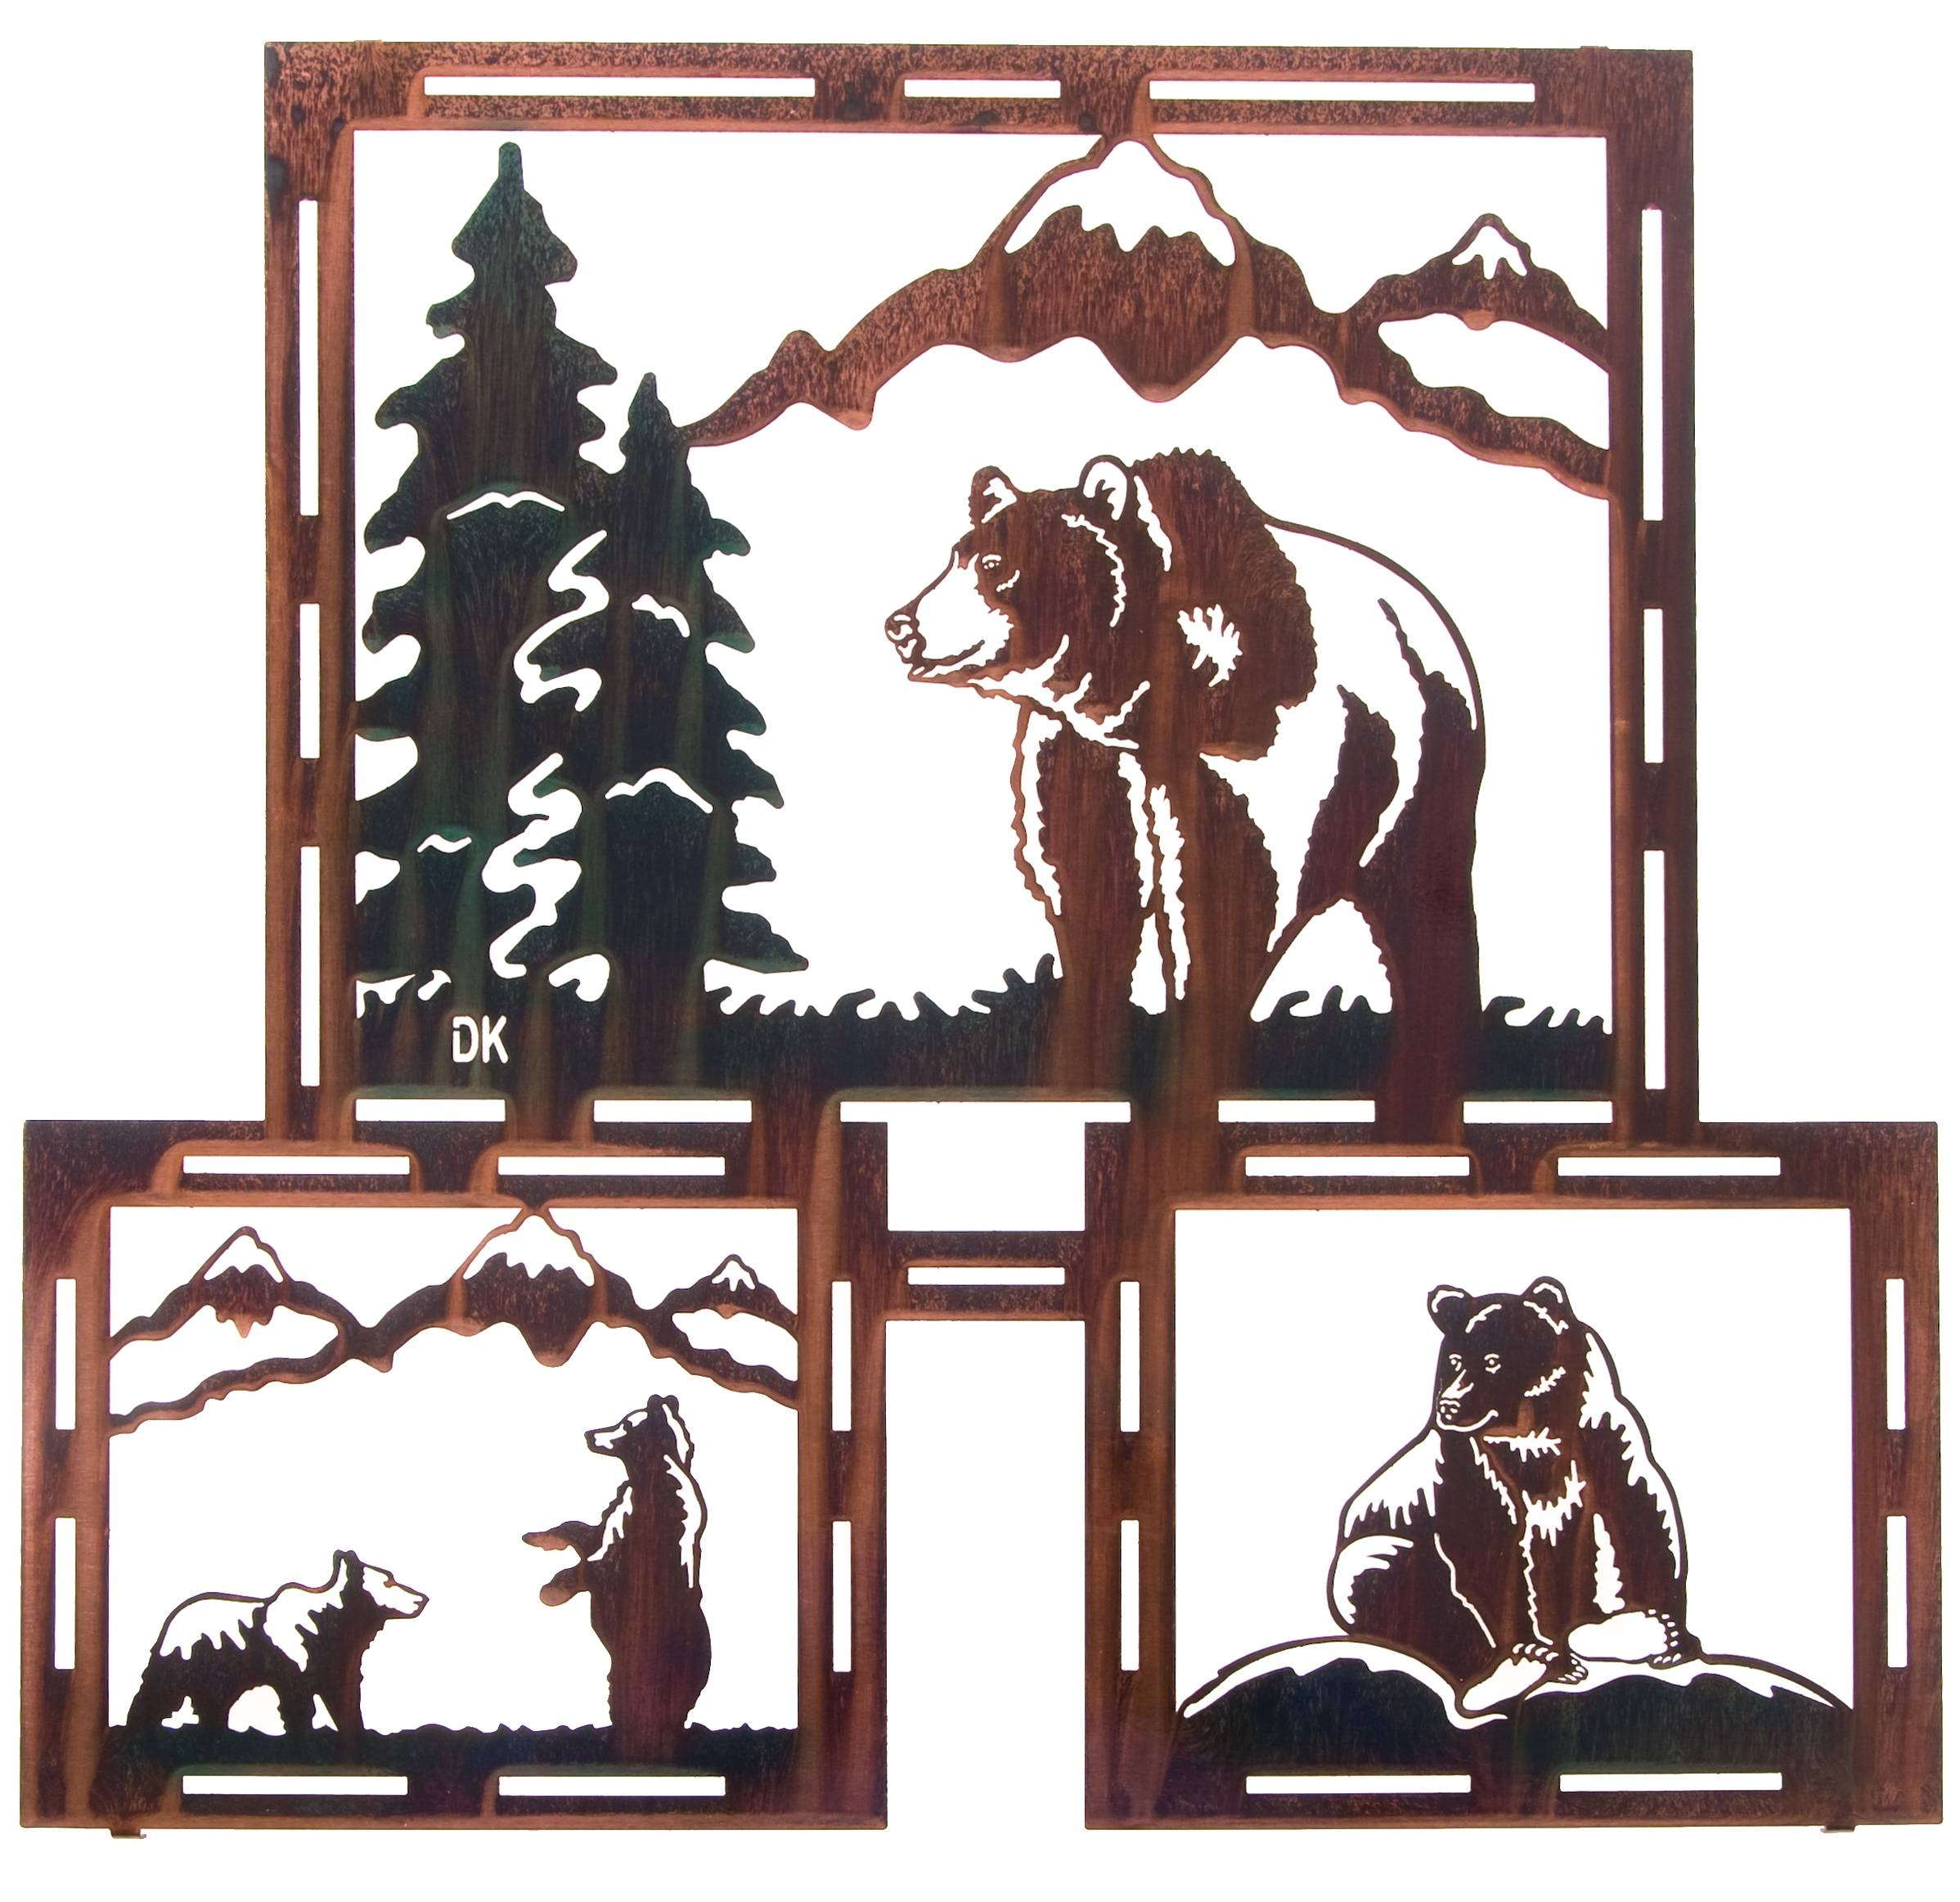 Bear Wall Art, Bear Wall Hangings, Metal Wall Sculptures Regarding Most Recent Wildlife Metal Wall Art (View 5 of 20)